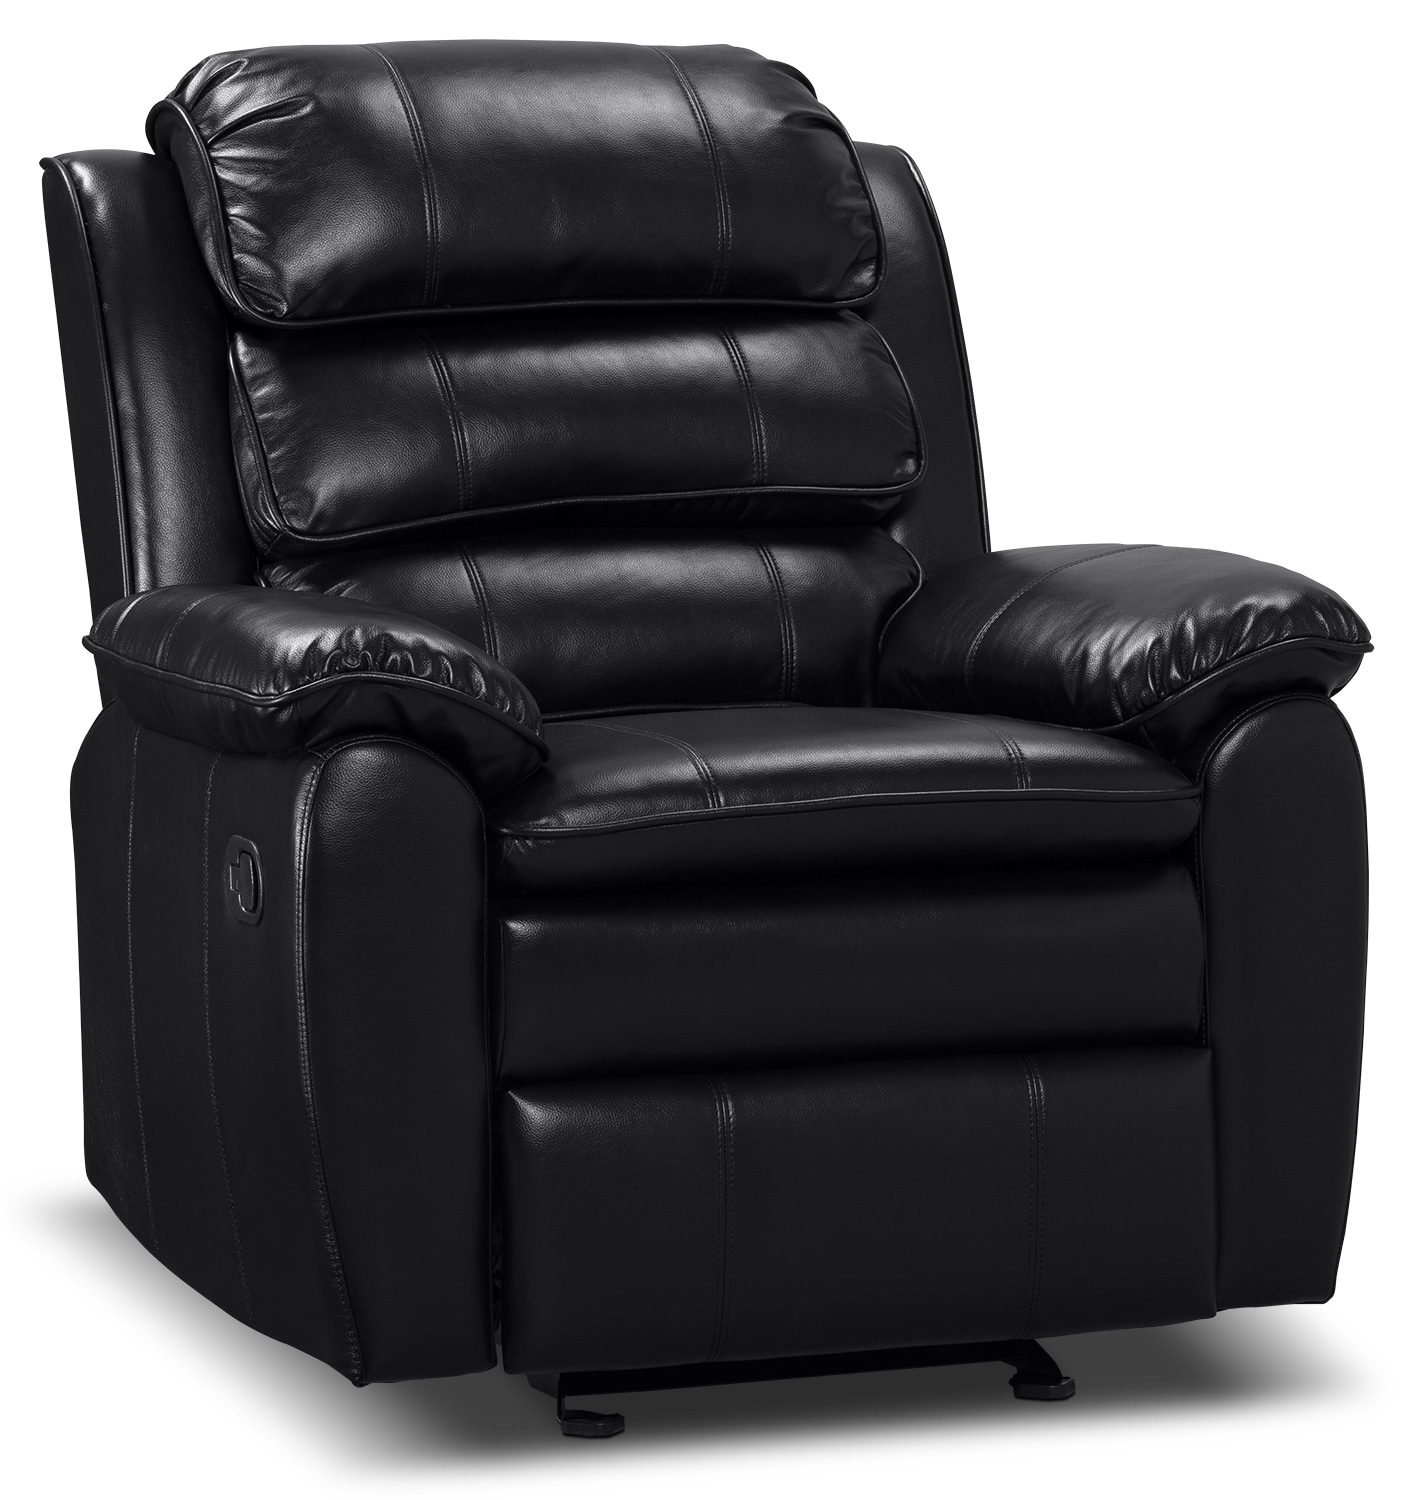 Adam Leather-Look Fabric Reclining Glider Chair – Black